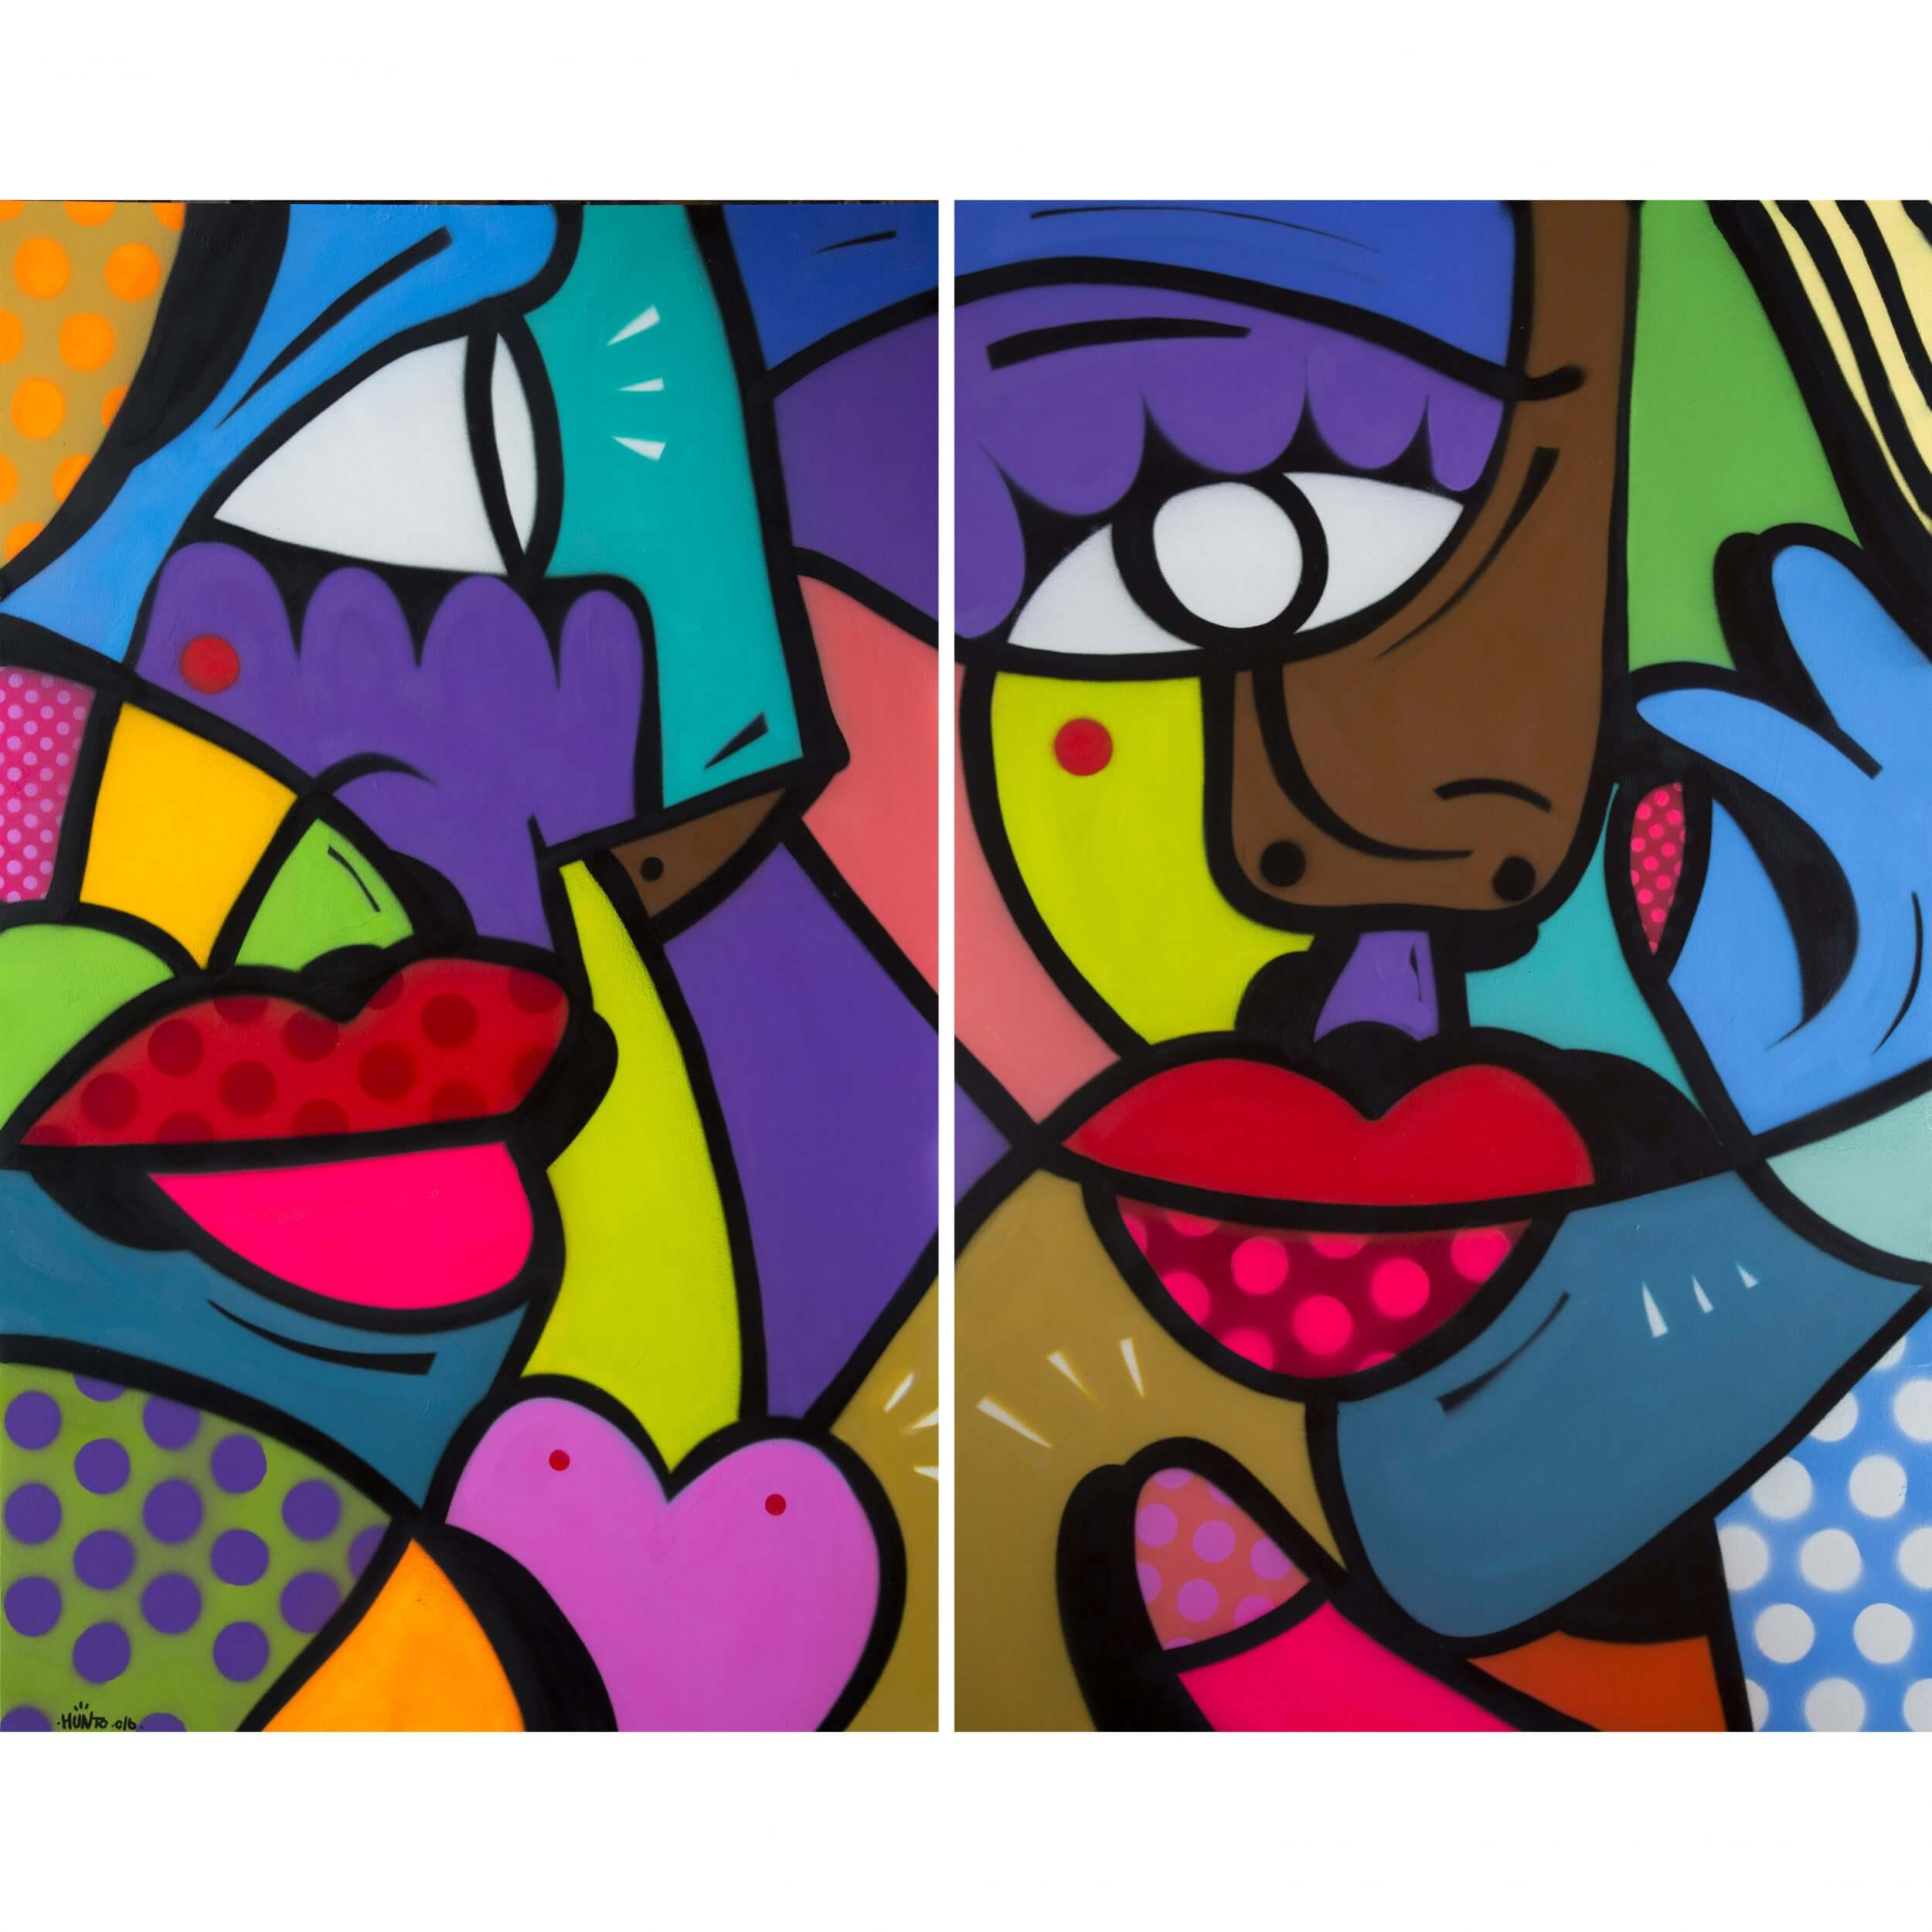 Hunto - Untitled Diptych